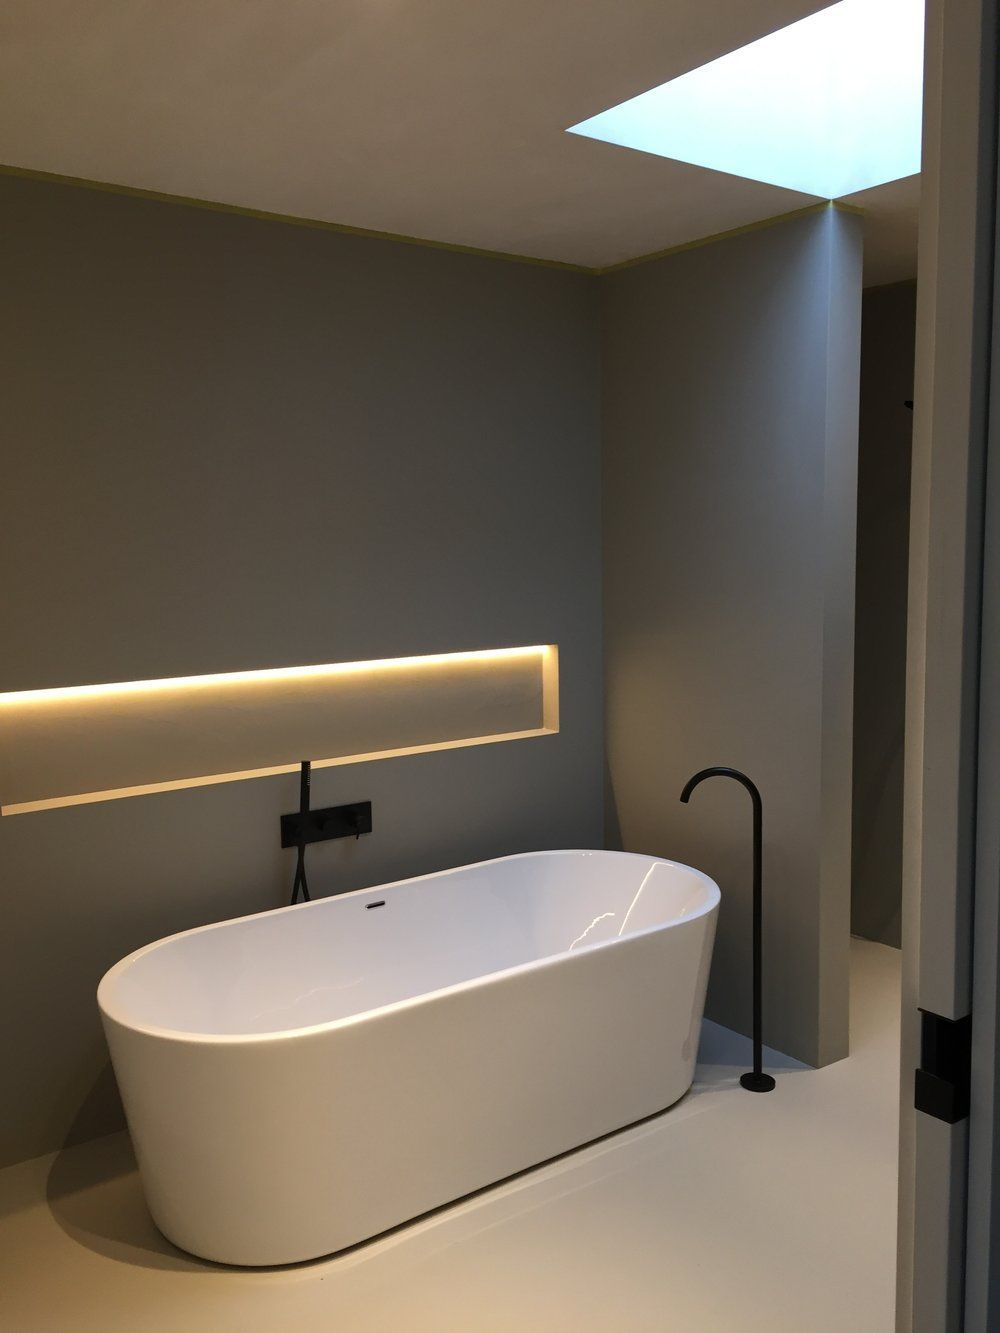 Remodeling Bathroom Ideas Diy Is No Question Important For Your Home Whether You Choose The Bathroom Ideas Remodel Or Bathroom Renovati Badezimmer Renovieren Badezimmer Und Badrenovierung